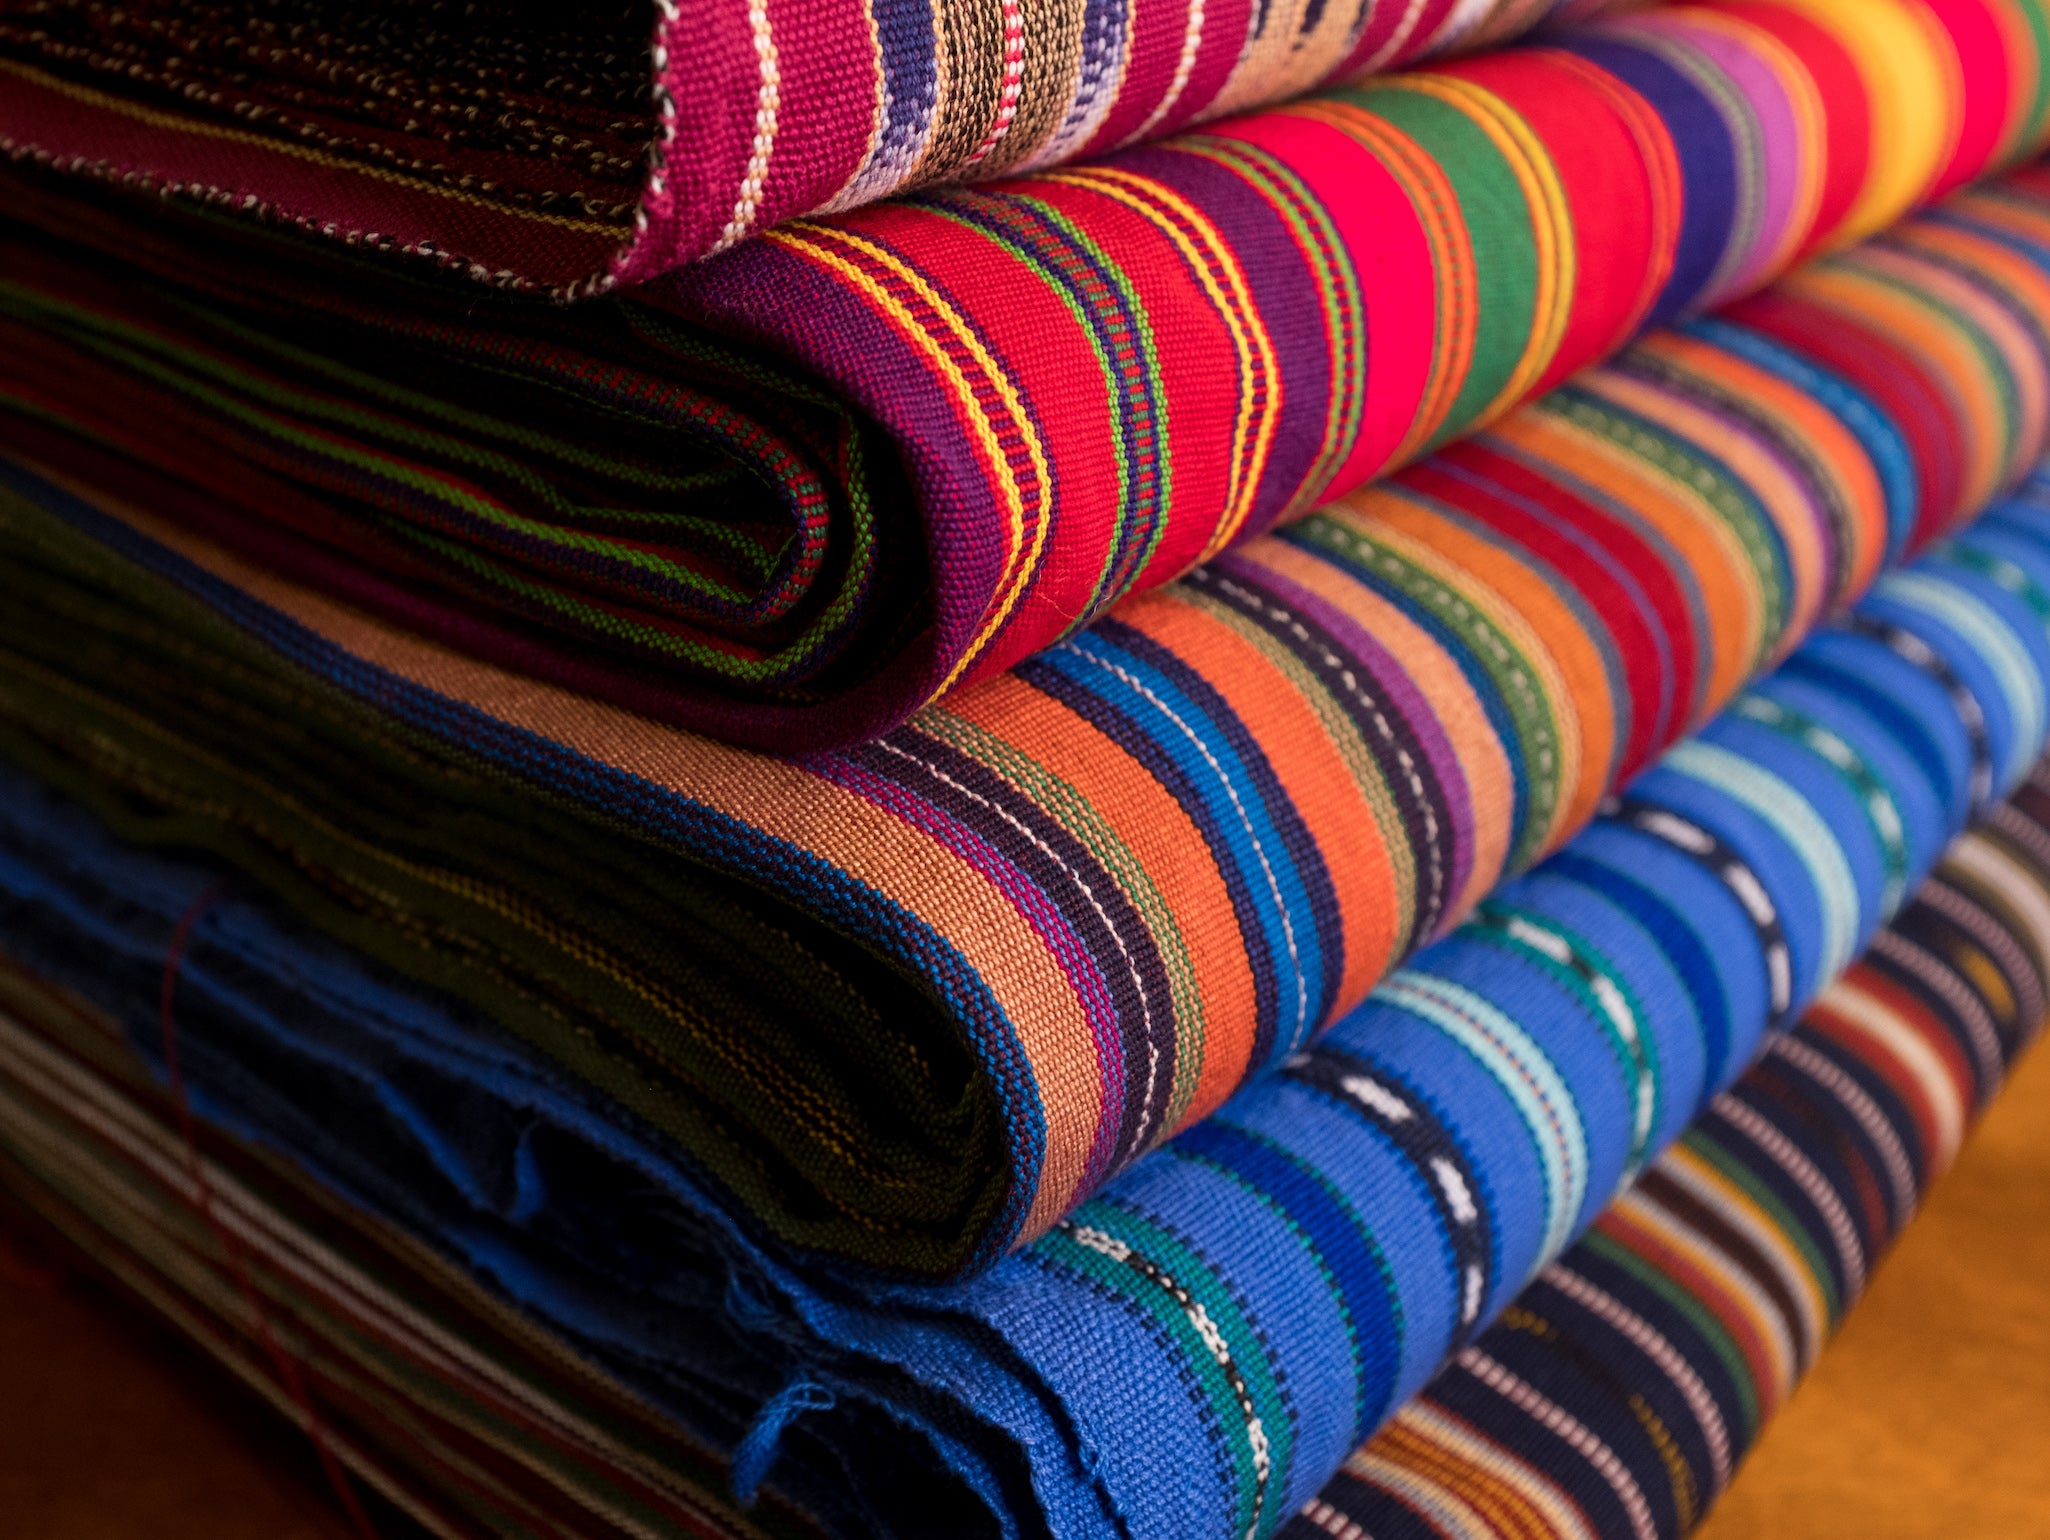 Handwoven textiles from Guatemala